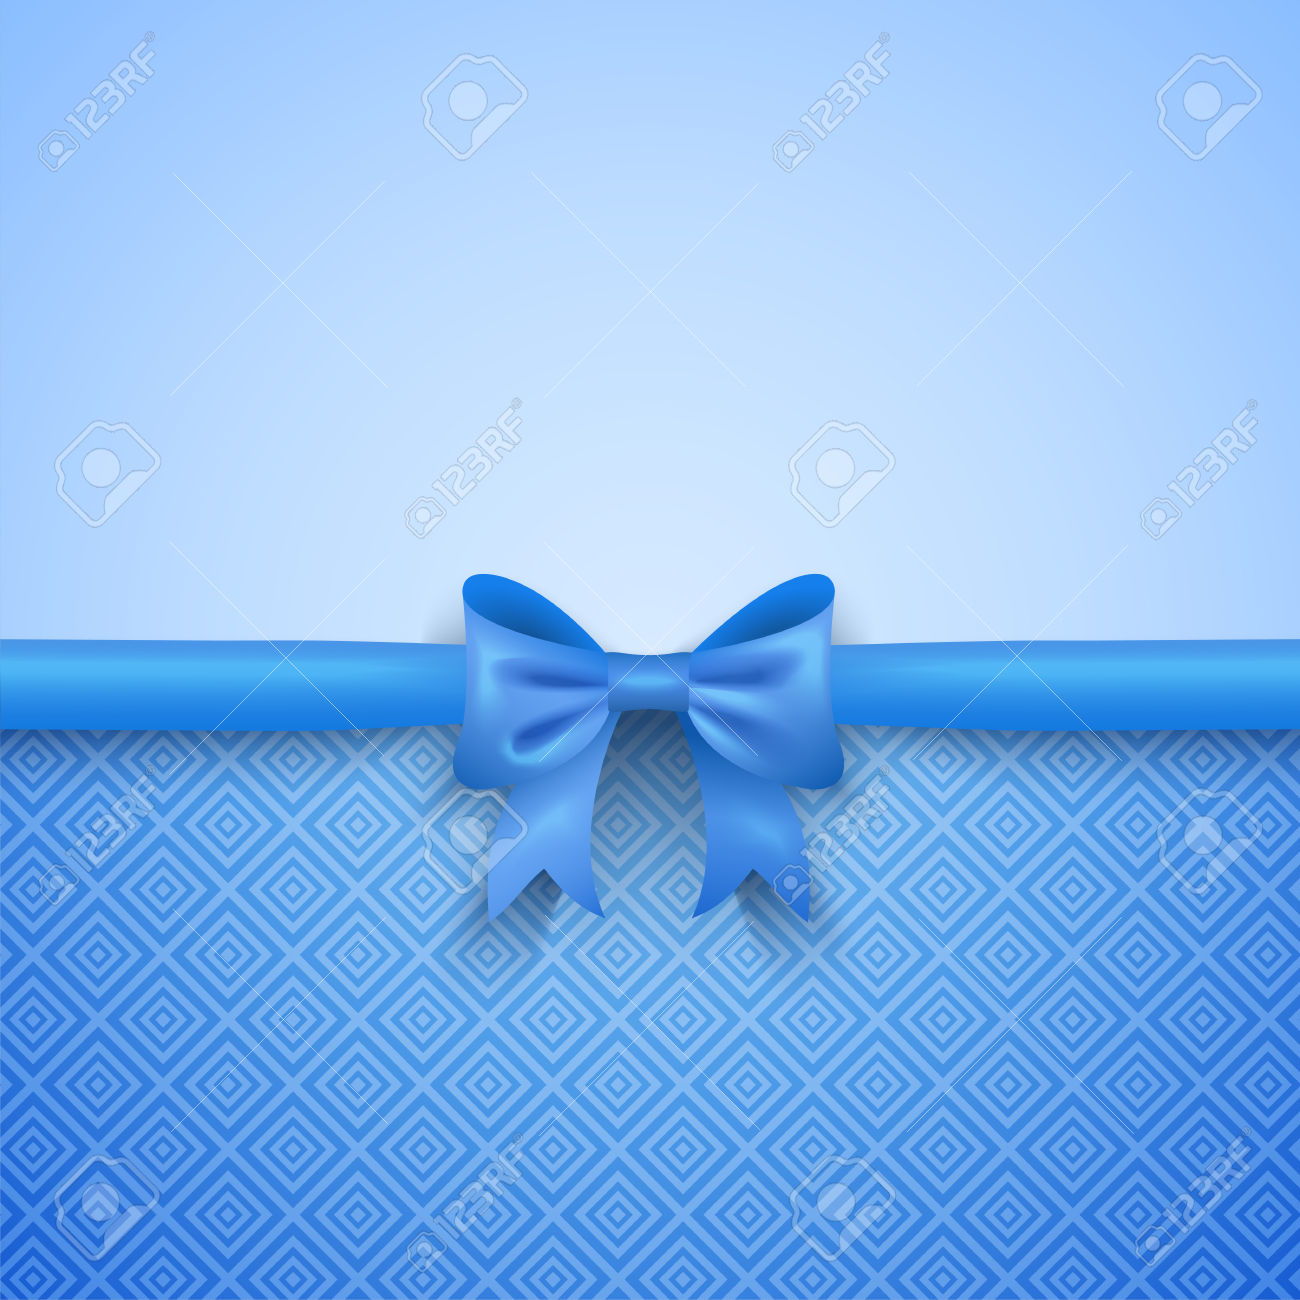 Blue Bow Wallpaper